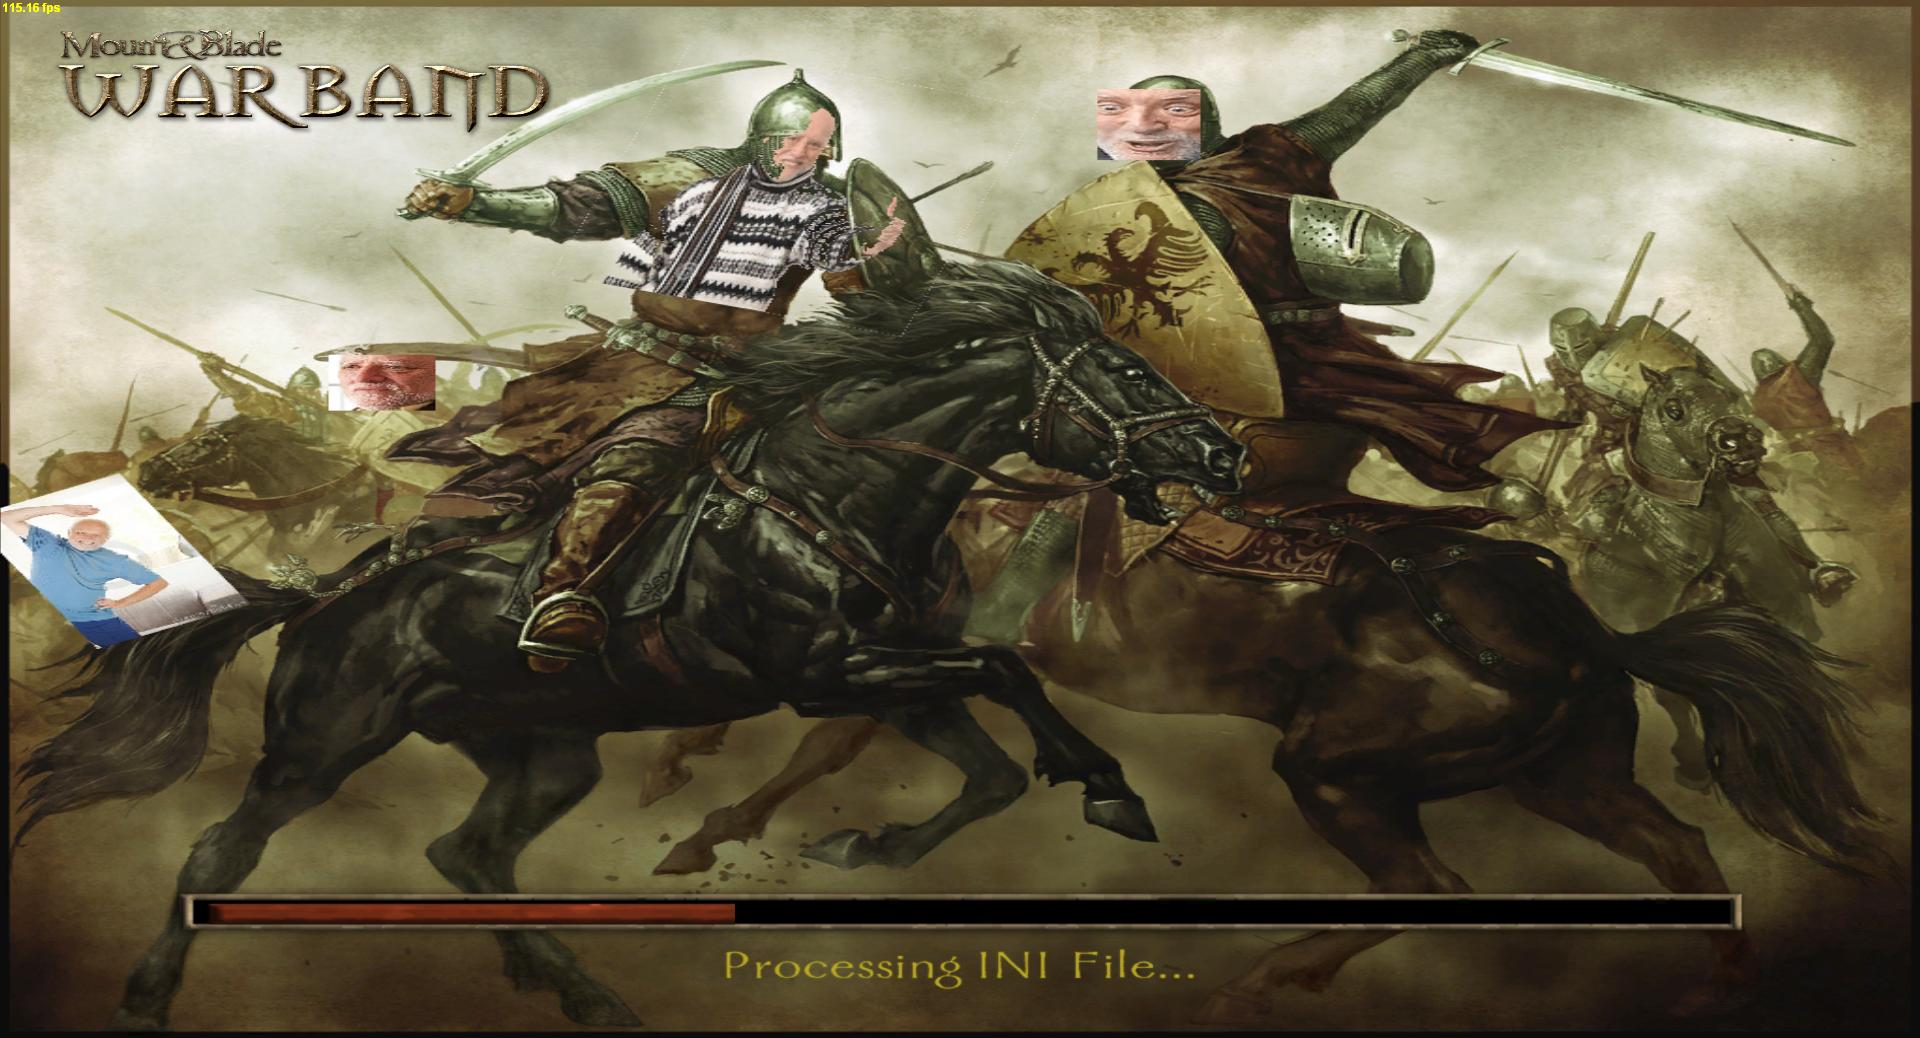 mb_warband_2016 02 23_17 51 54 7 butter and blade 2 checkerlord mod for mount & blade warband,Mount And Blade Memes